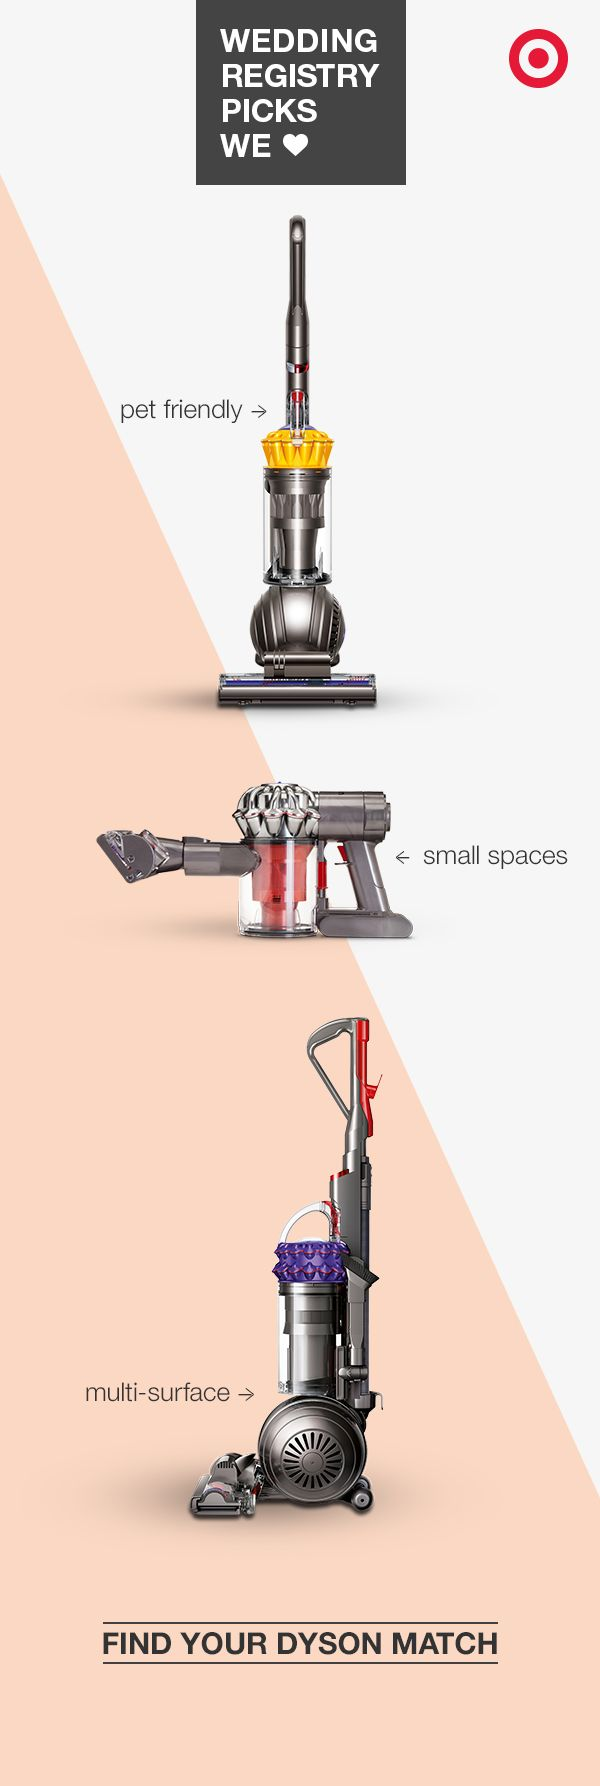 Your wedding registry is a great time to get a Dyson. But which to choose? The Cinetic Big Ball Animal vacuum helps control air quality and allergens in homes with pets; the V6 Absolute cordless vacuum boasts easy, lightweight floor-to-ceiling cleaning, perfect for anyone tight on space; and the Ball Multi-floor Upright vacuum is made to self-adjust when transitioning from hard wood to carpet and rugs. Add the one you both love to your registry, and get ready to enjoy a clean start.